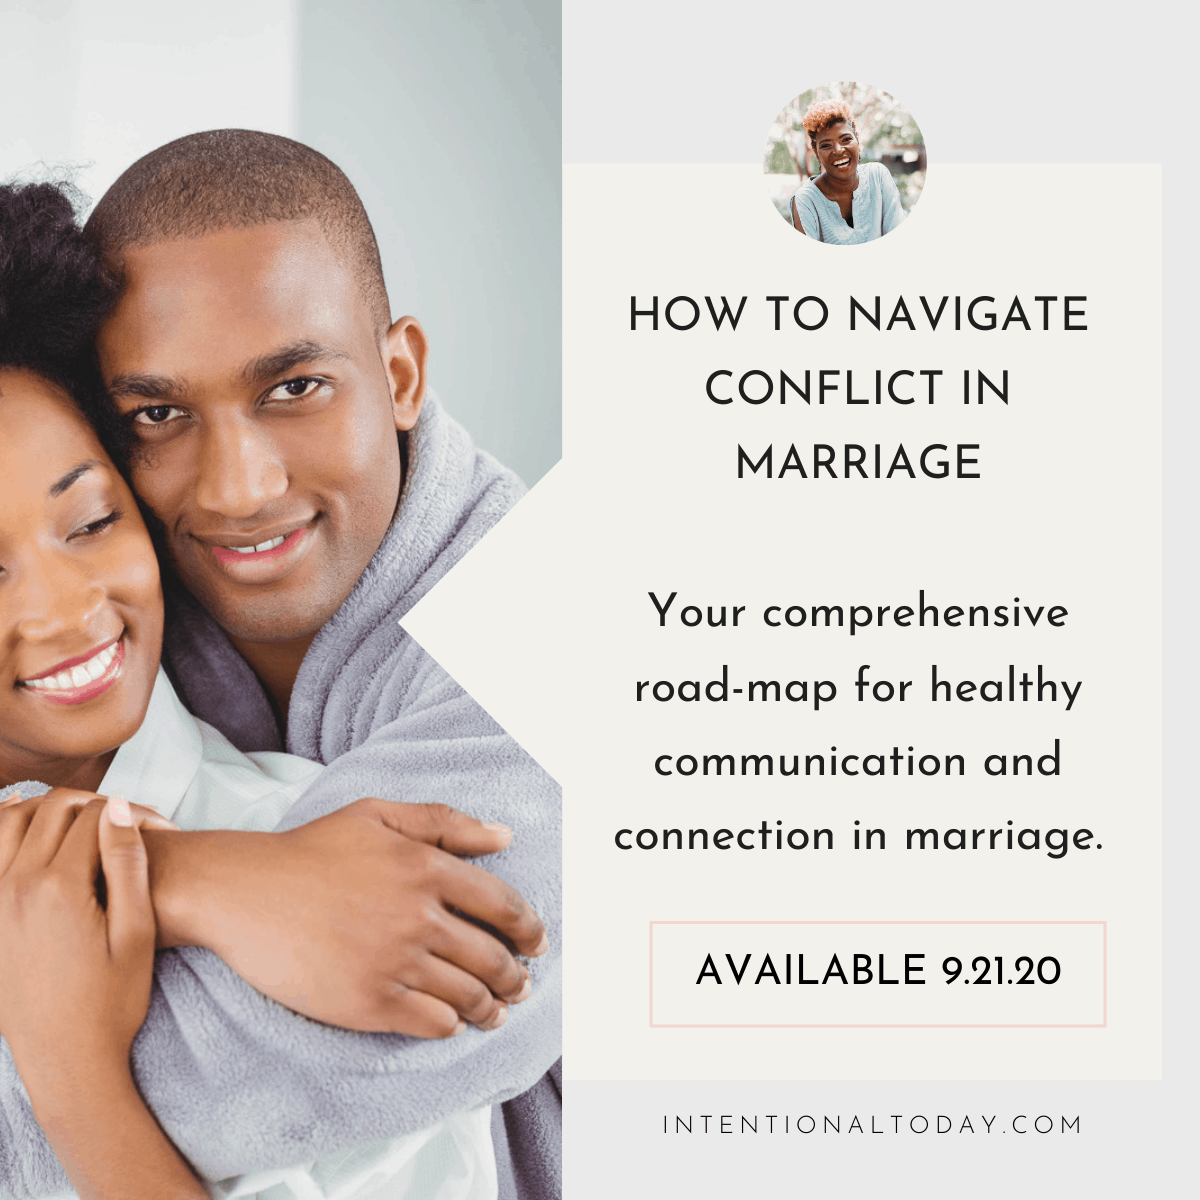 How to navigate conflict in marriage so your relationship can thrive